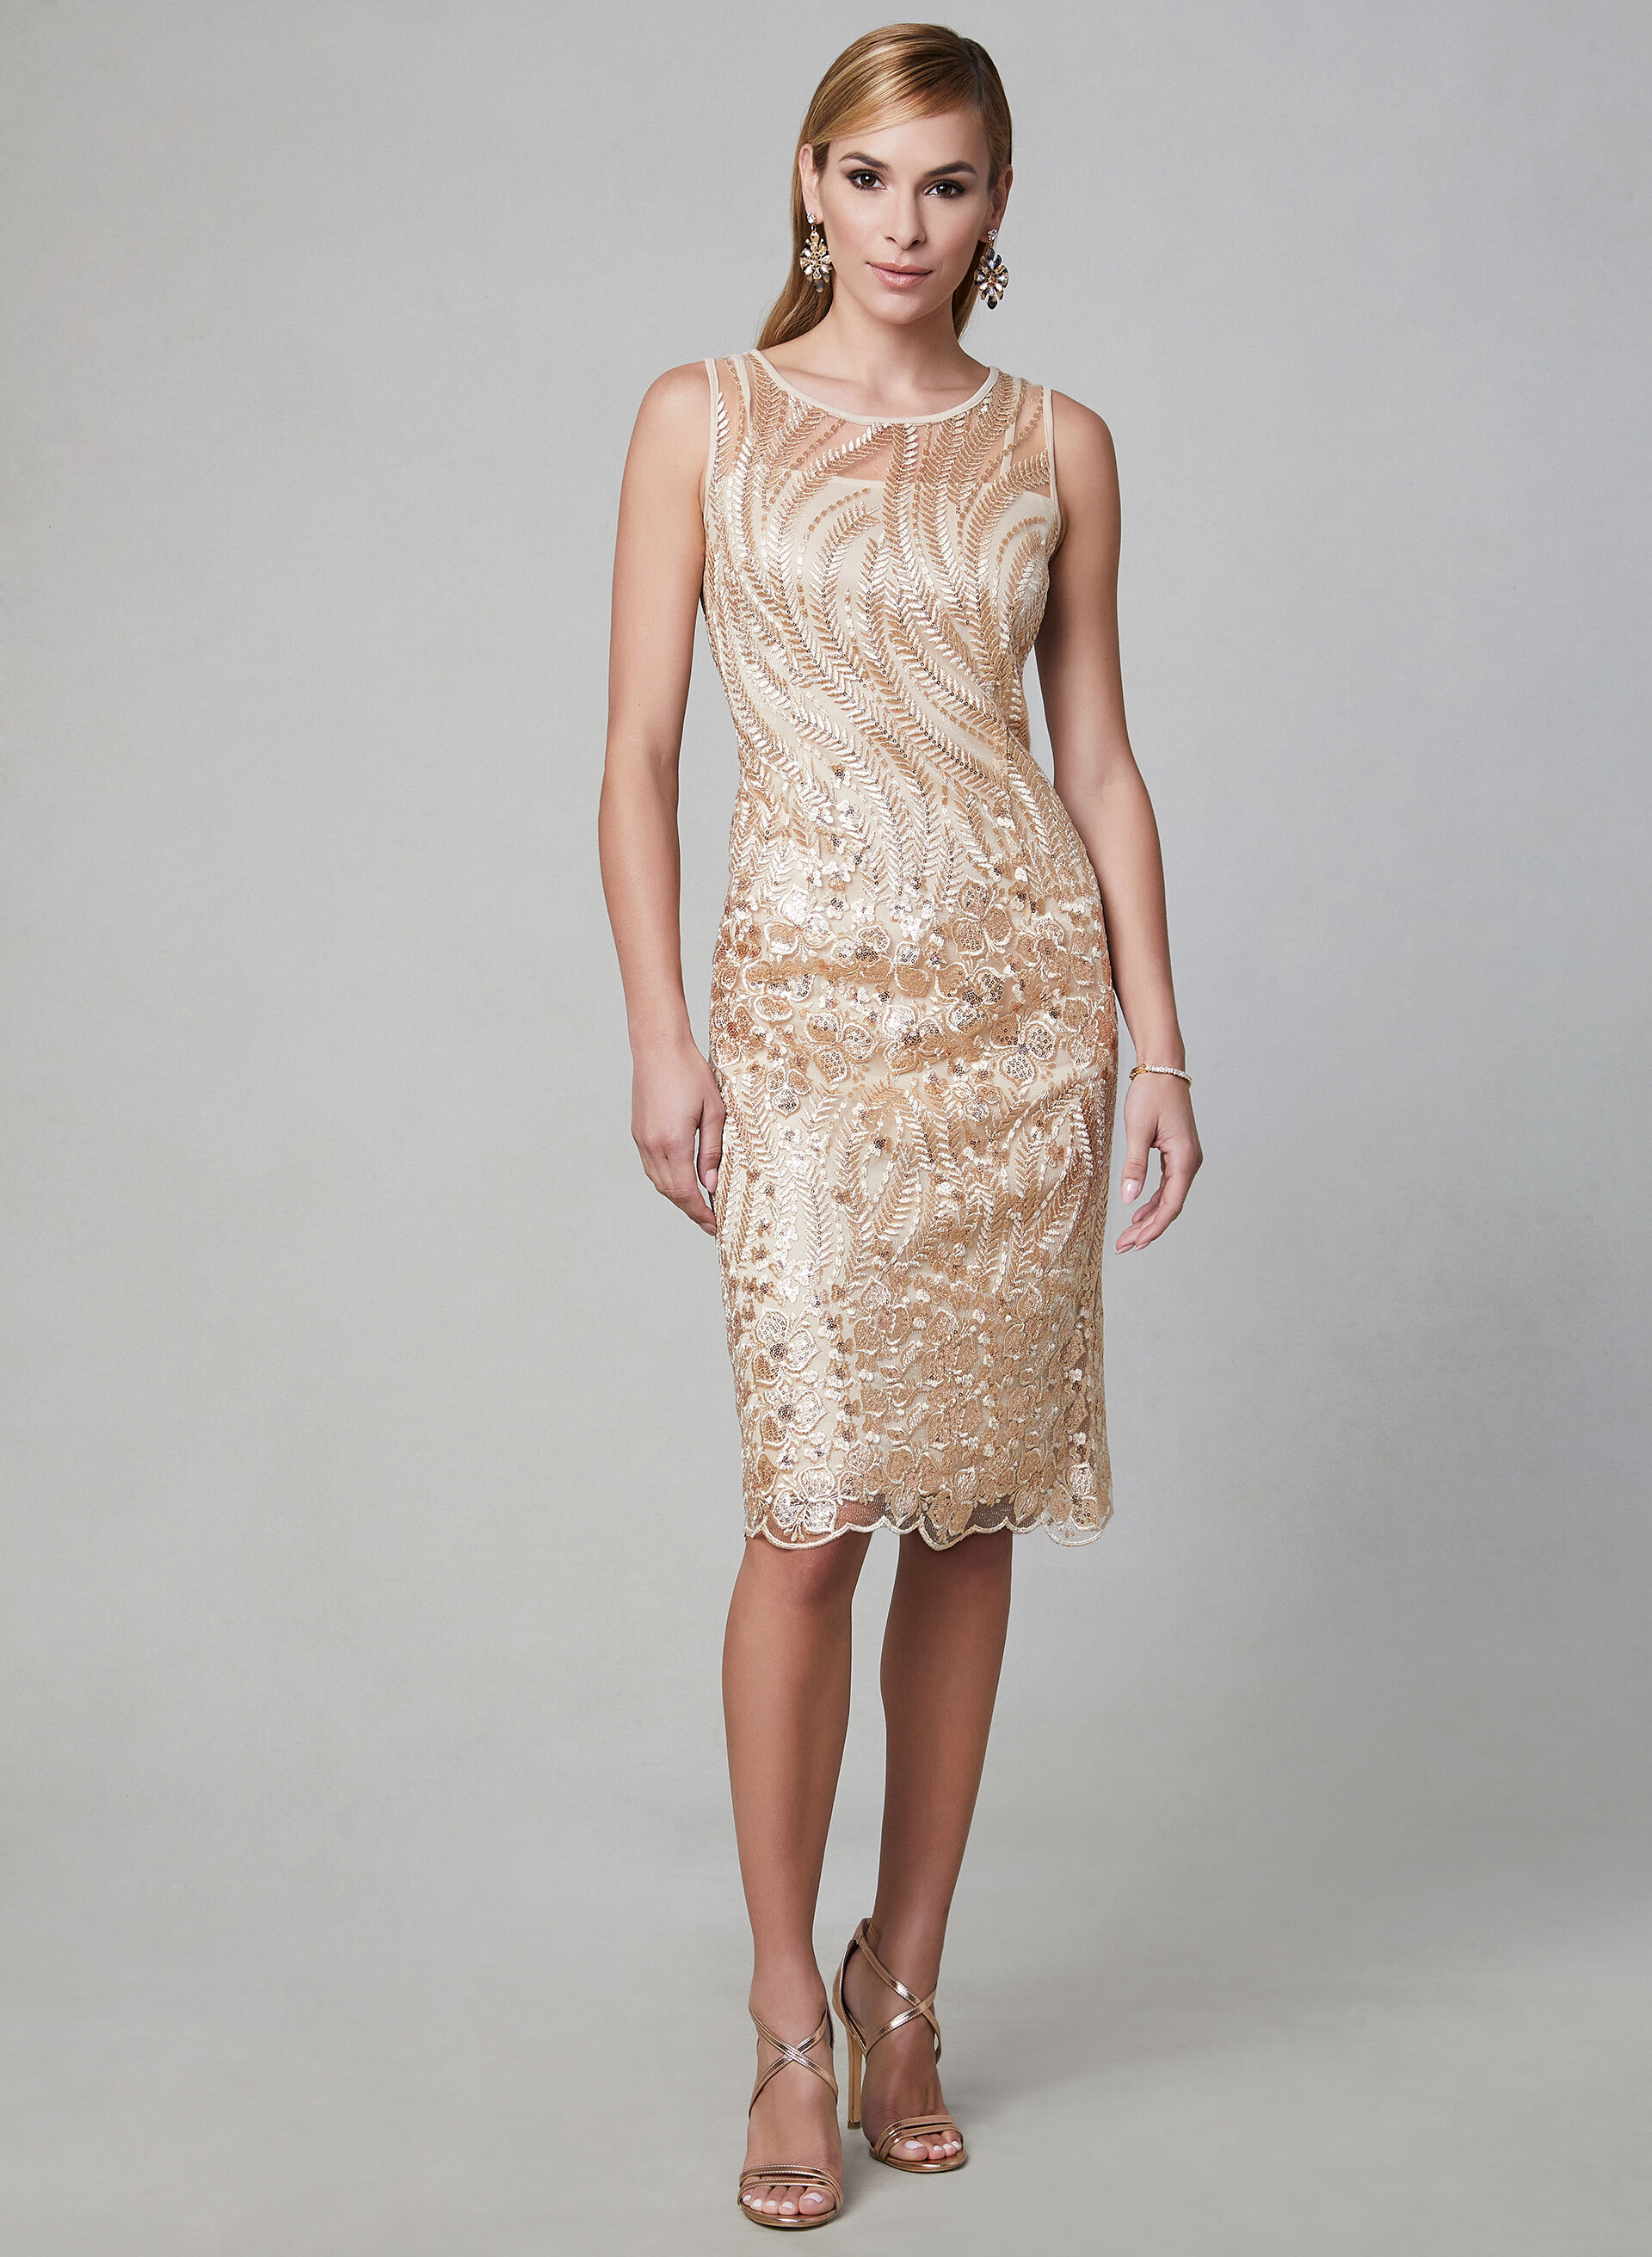 Silver Sparkle Cocktail Dress Shop